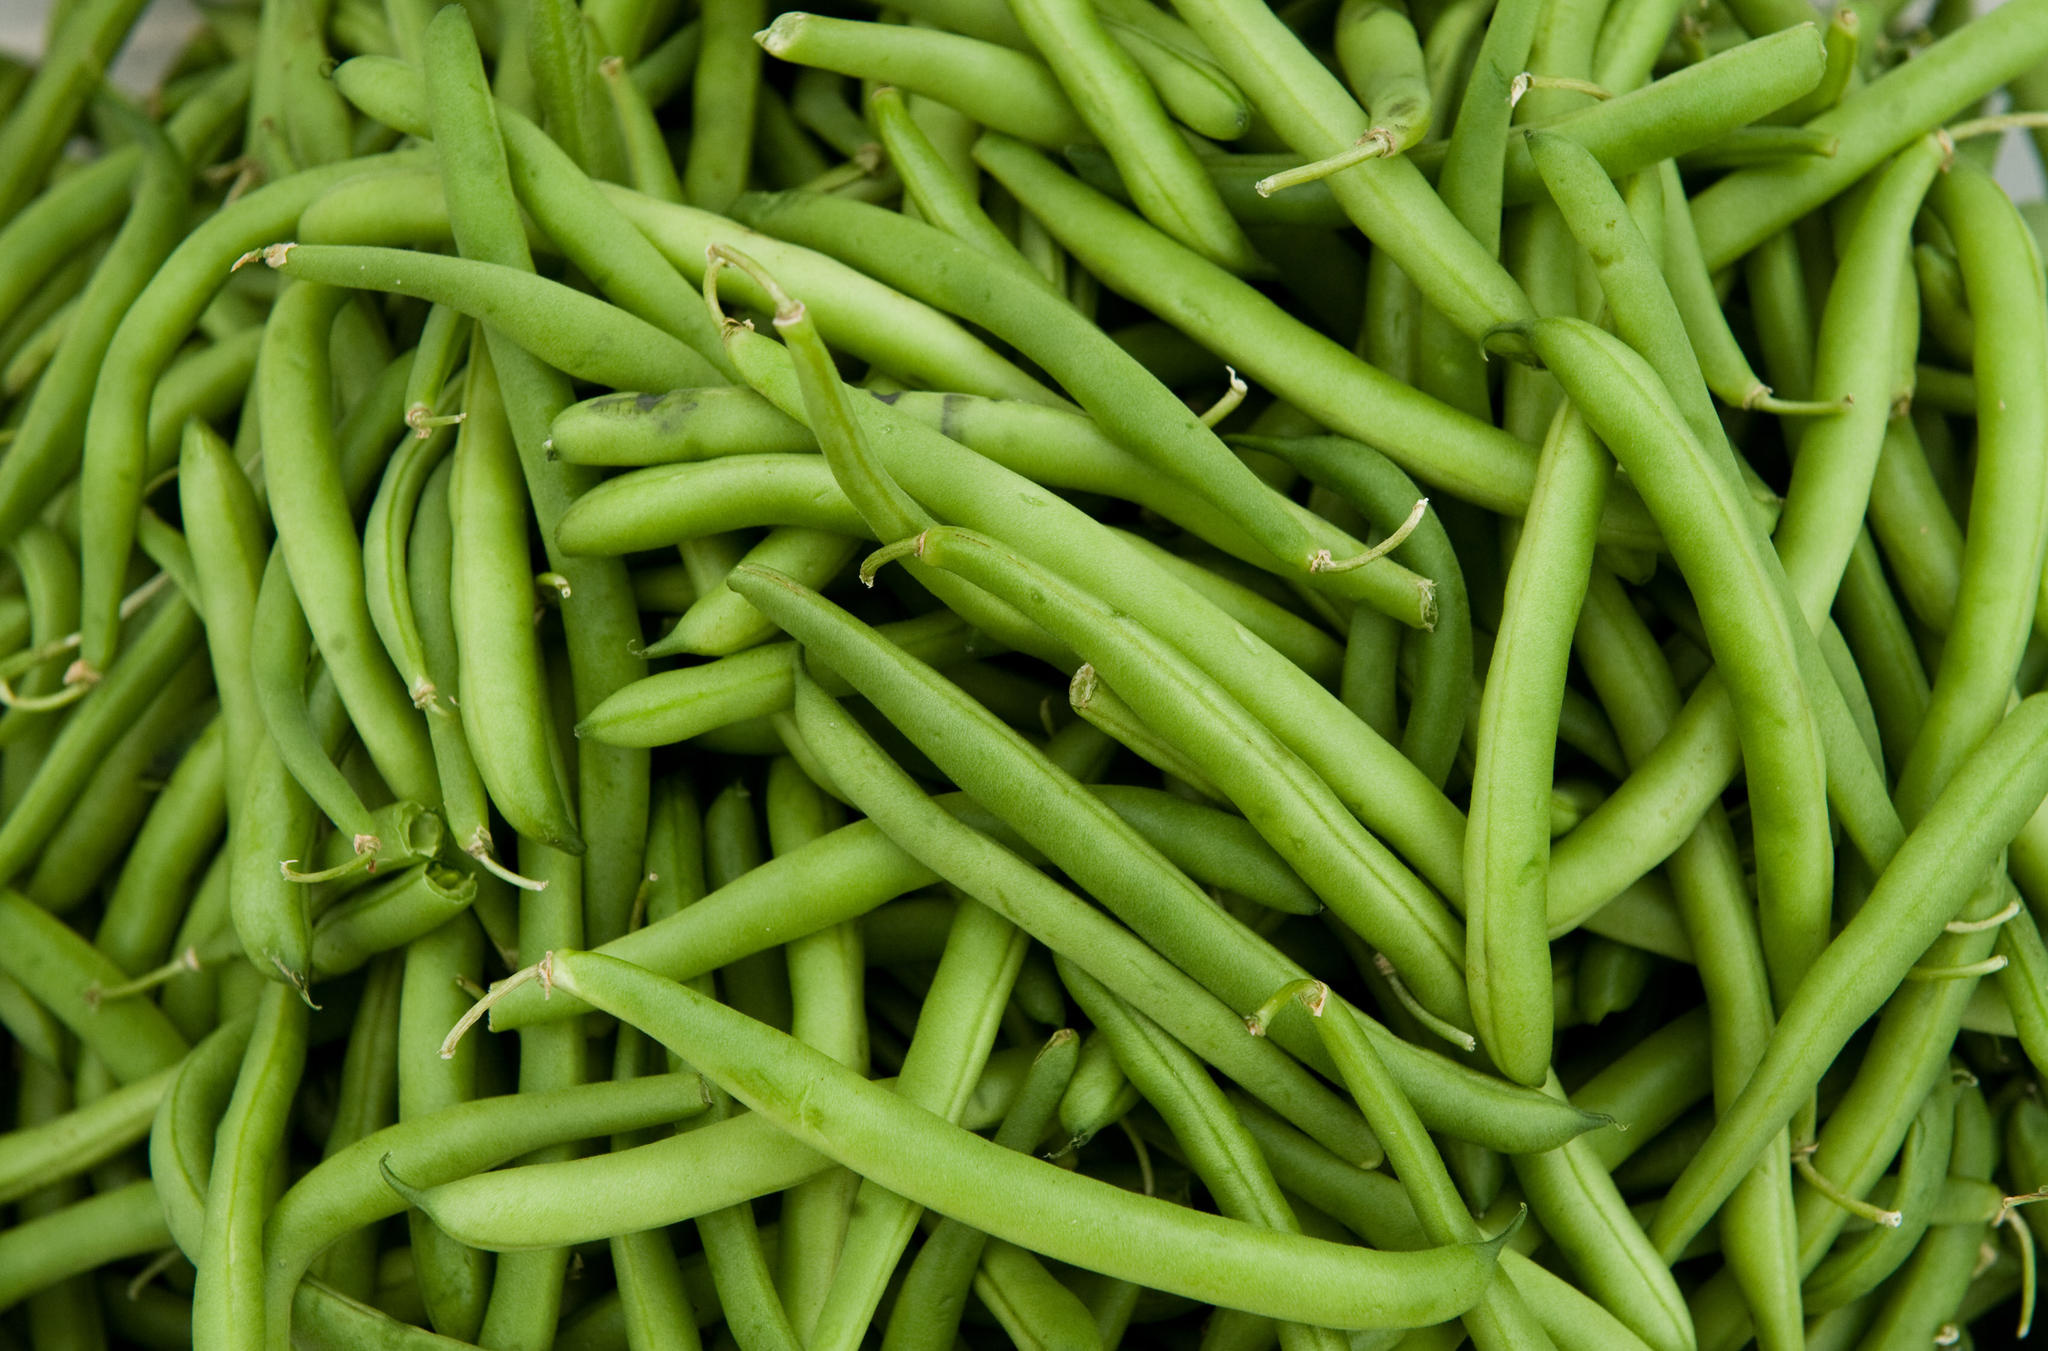 green beans for our June 2 Recipe Box. (Please skip the green bean ...